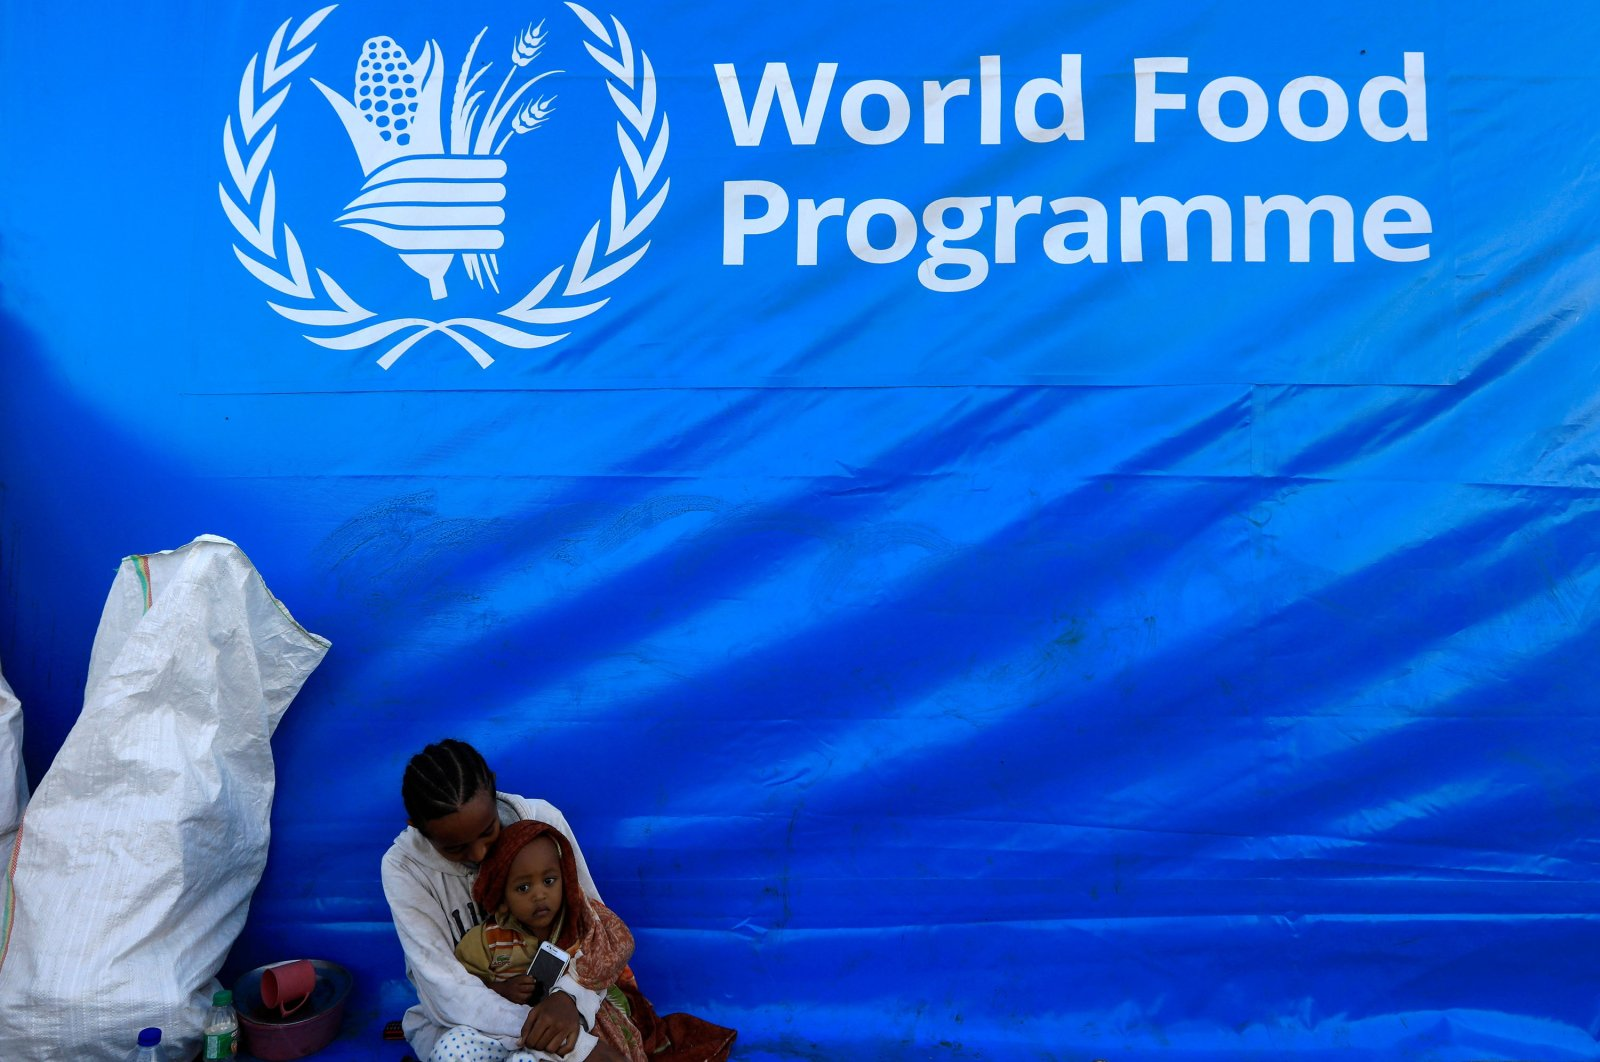 An Ethiopian woman, who fled the ongoing fighting in Tigray region, holds her child under a World Food Programme banner in Hamdayet village on the Sudan-Ethiopia border, in the eastern Kassala state, Sudan, Dec. 15, 2020. (Reuters Photo)